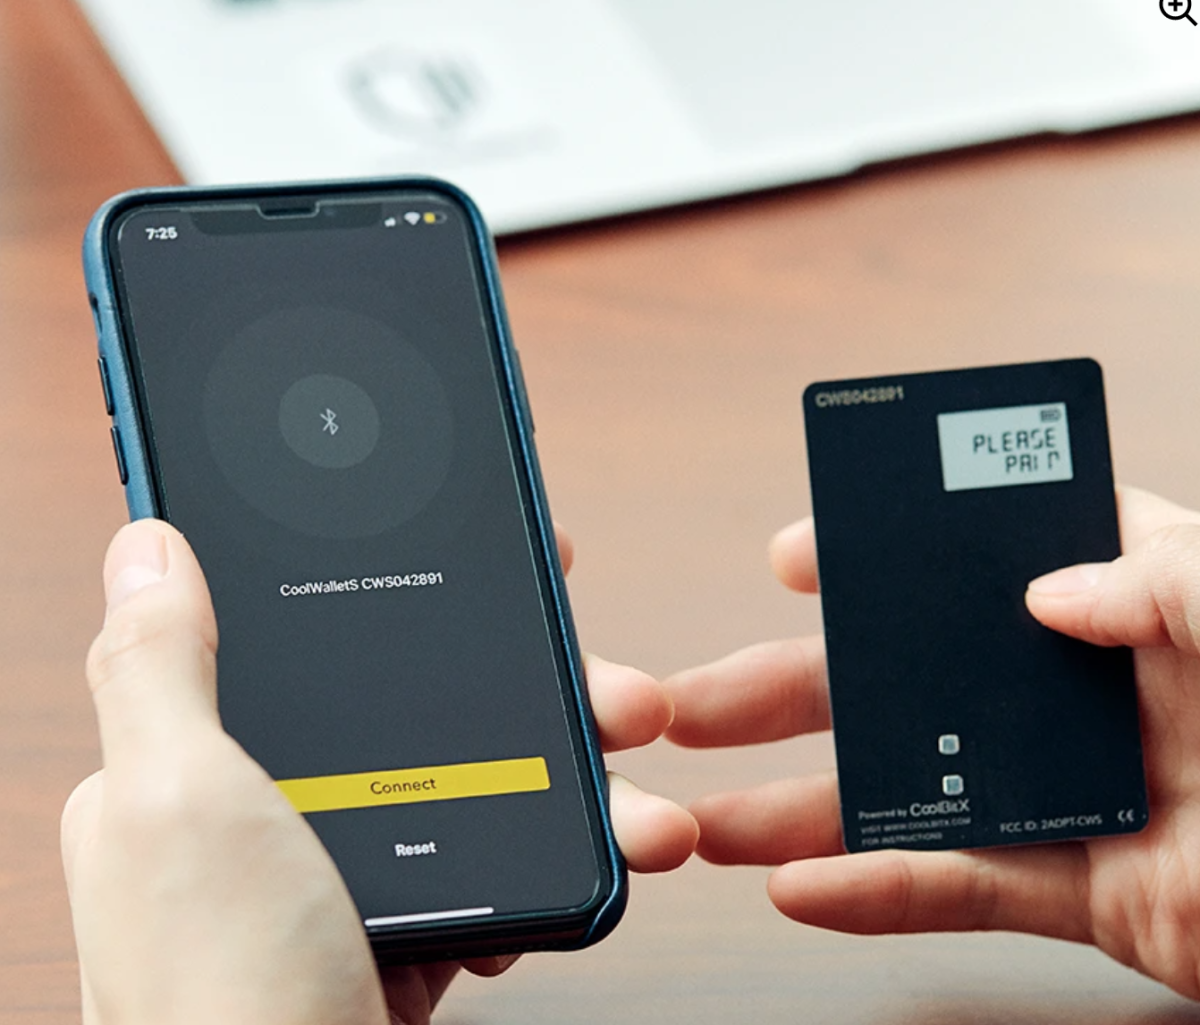 TheCoolWallet S hardware wallet connects to the CoolBit X Crypto app (iOS/Android) via Bluetooth.